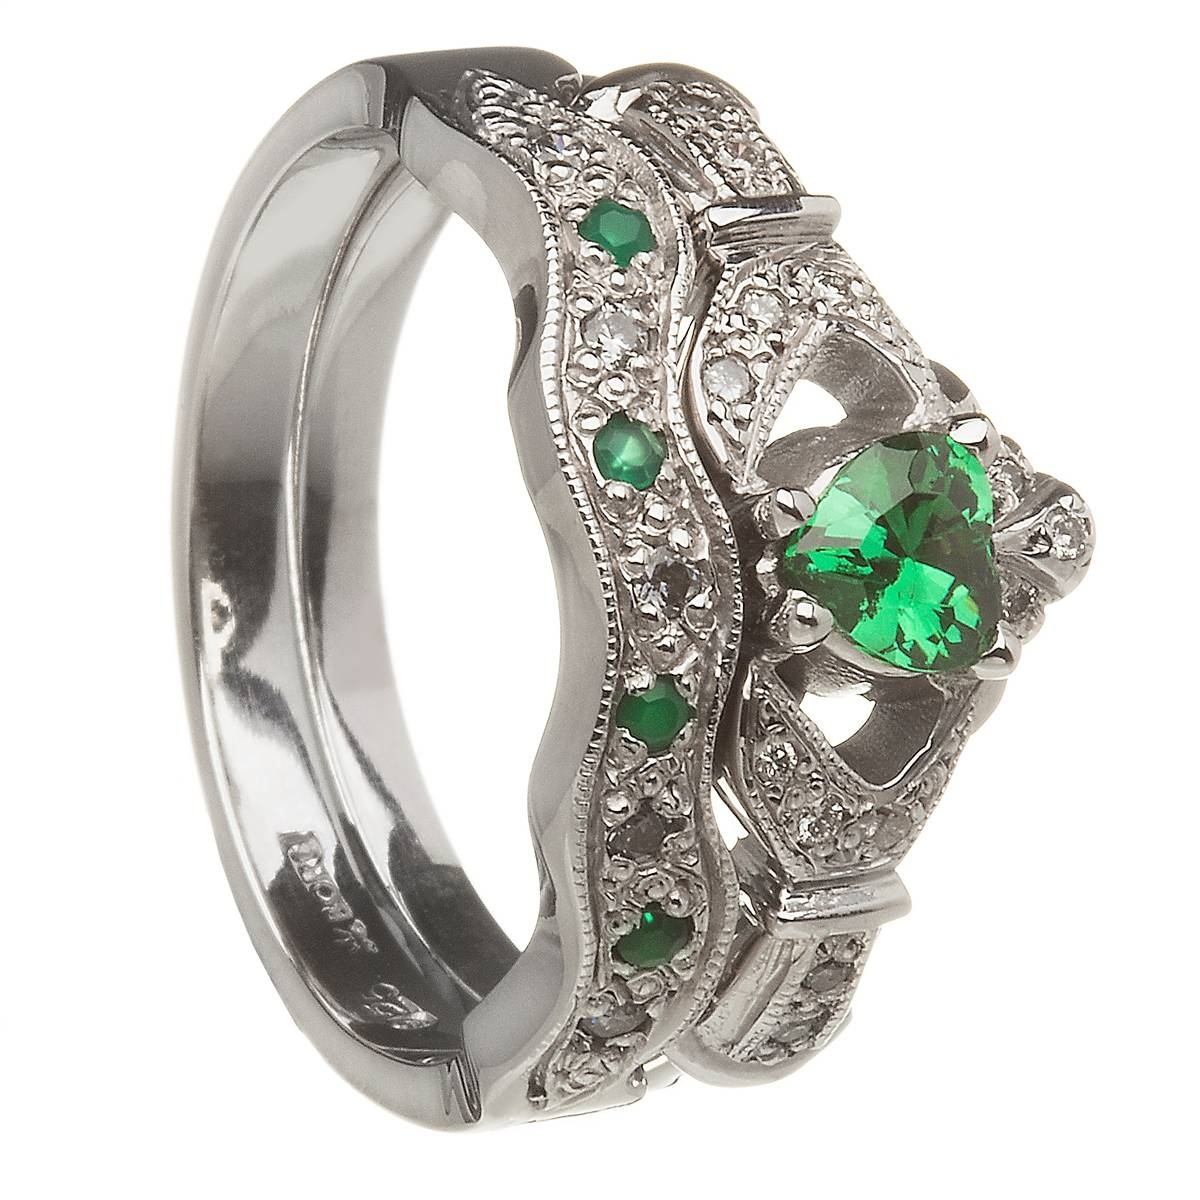 14k White Gold Emerald Set Heart Claddagh Ring & Wedding Ring Set Intended For Diamond Claddagh Engagement & Wedding Ring Sets (View 7 of 15)